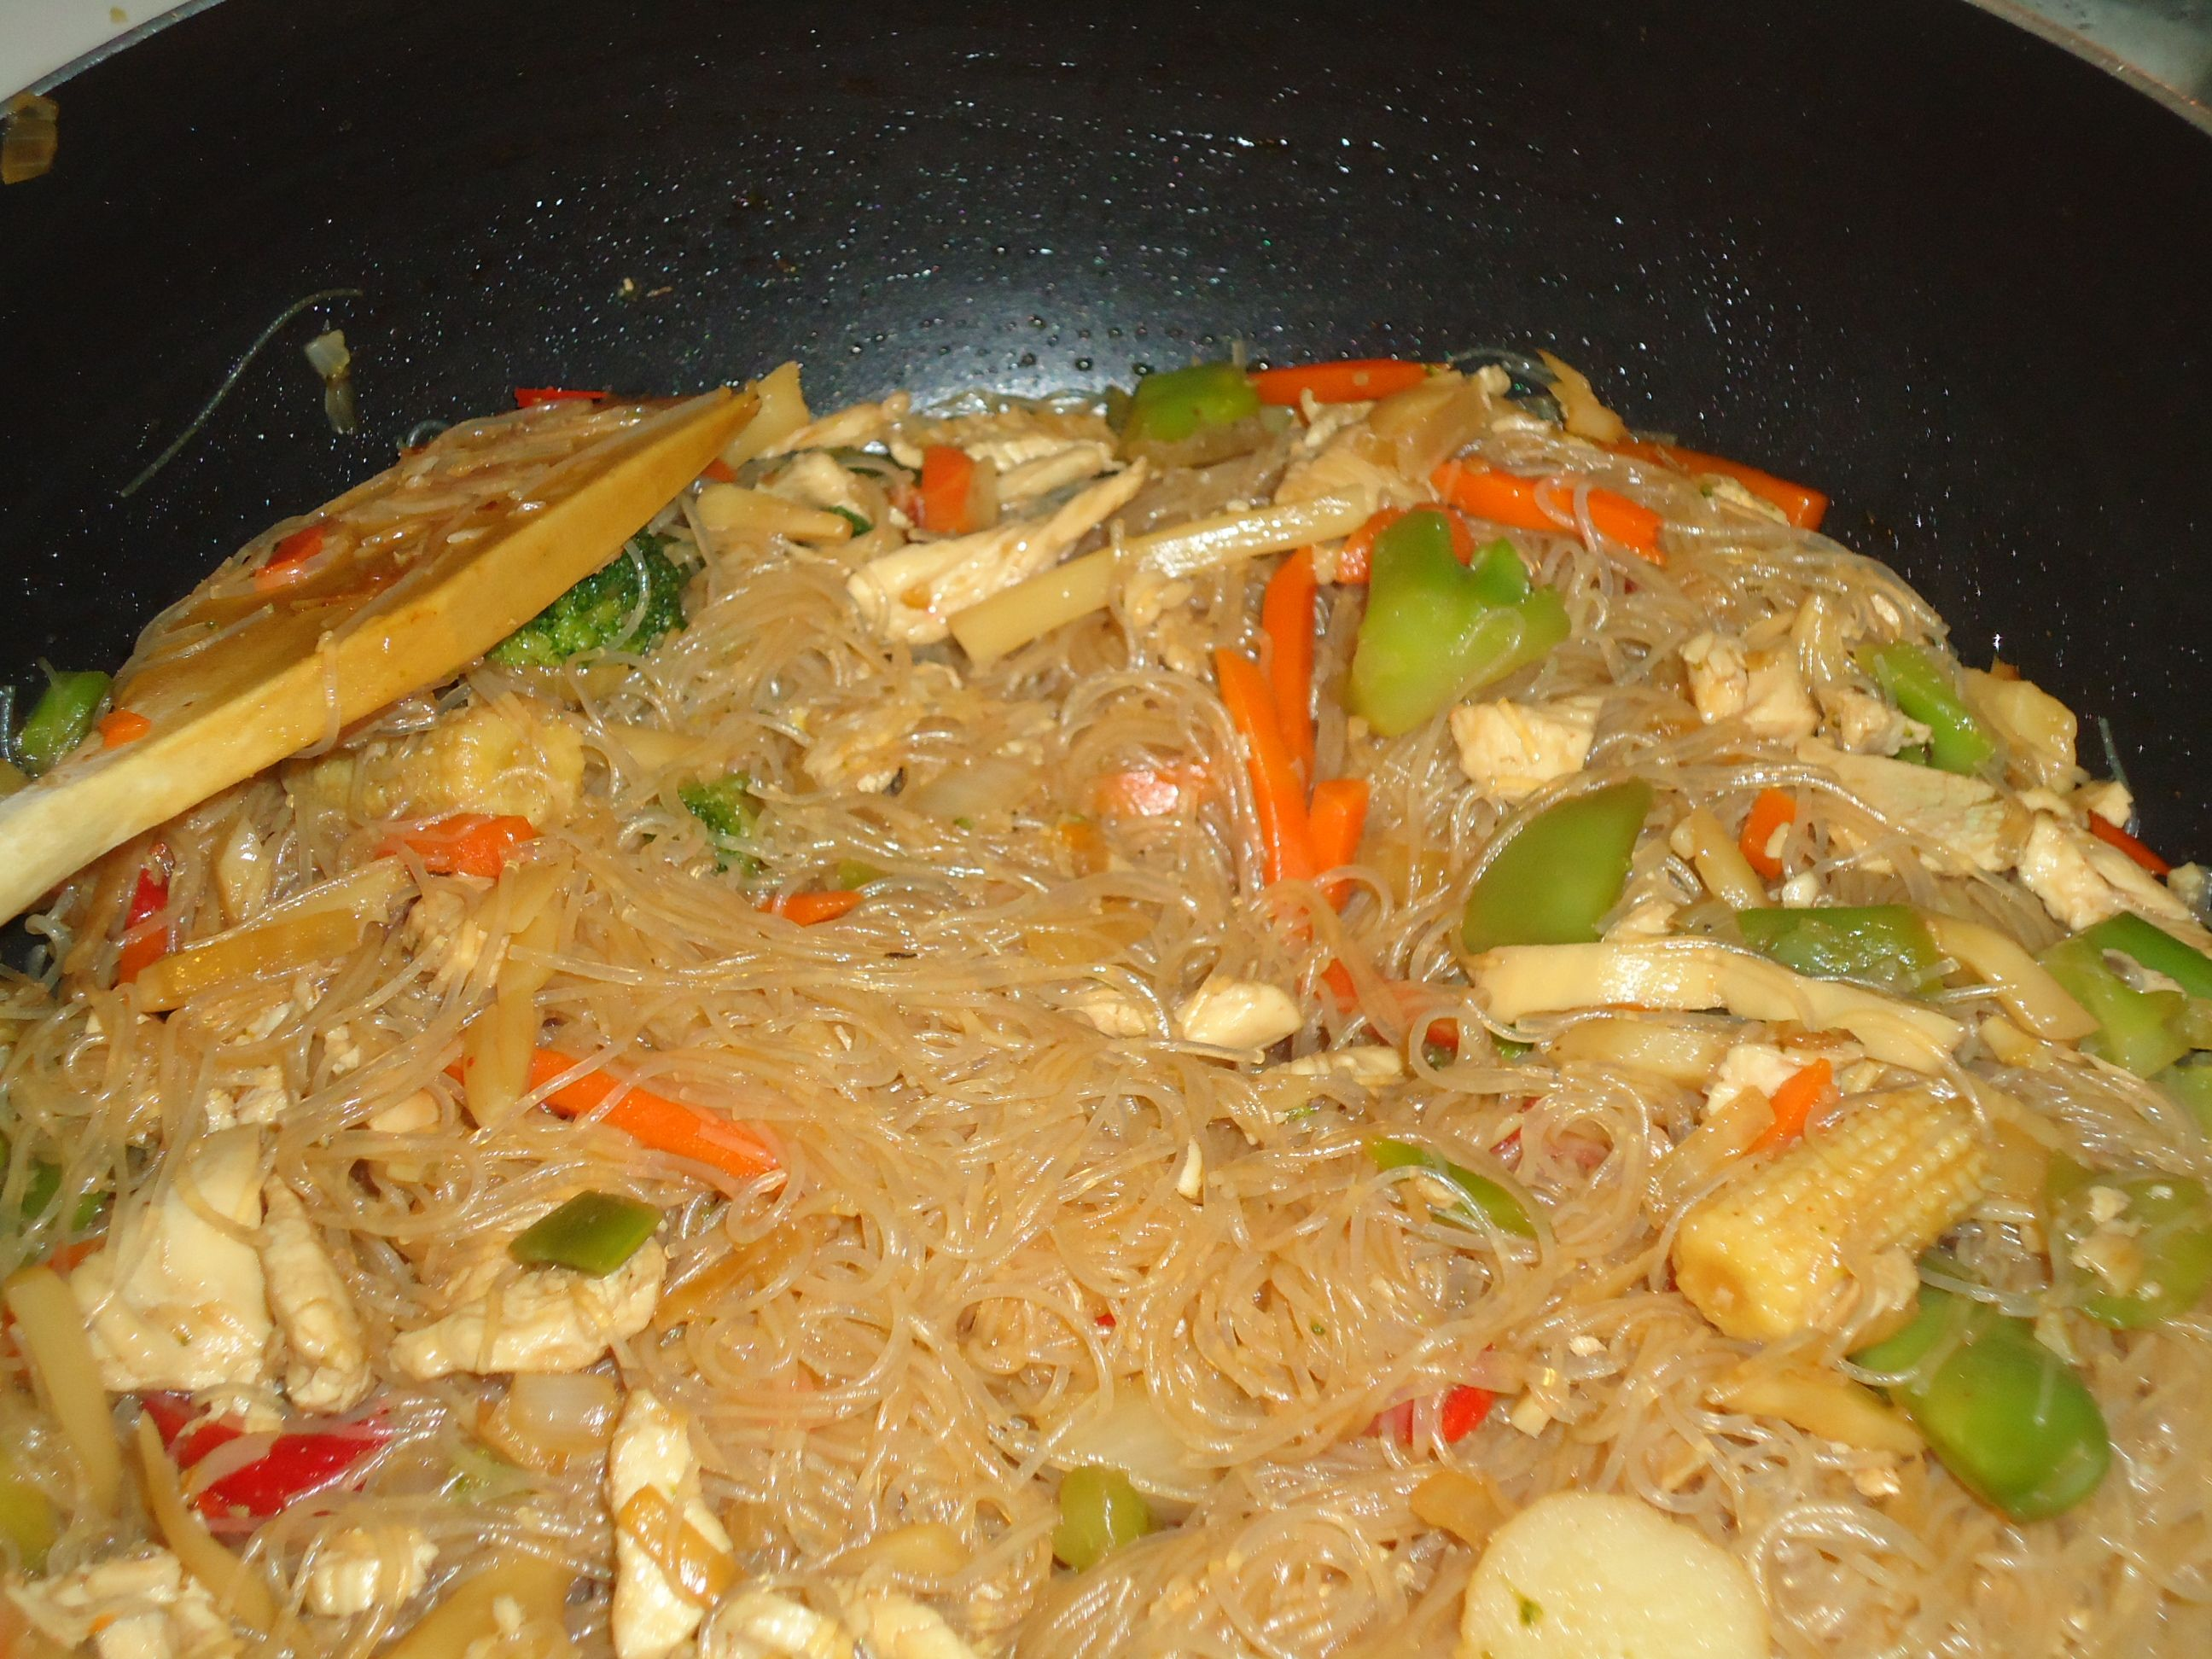 Stir Fried Chicken With Bean Thread Noodles And Vegetables With